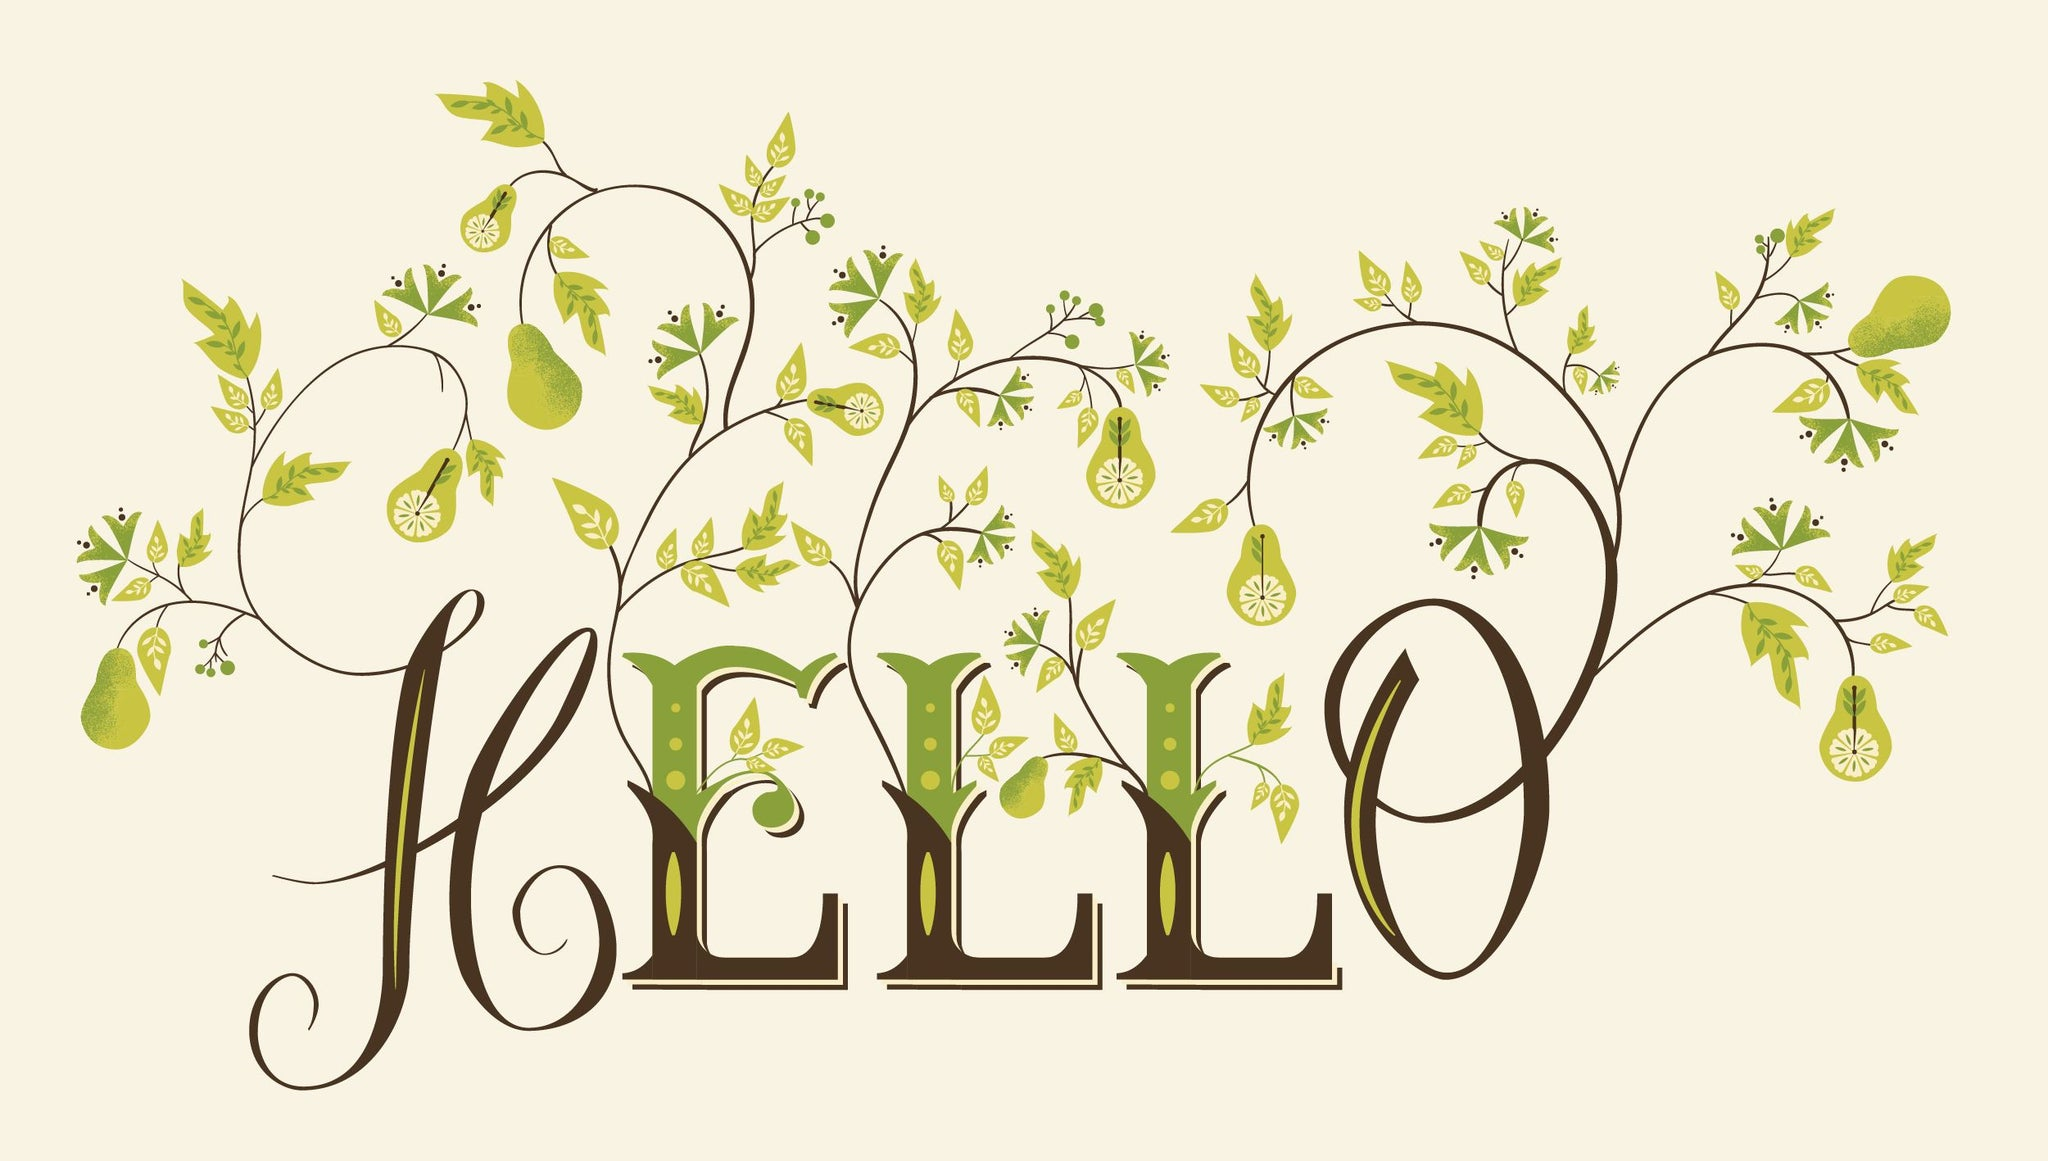 How to Create Botanical Lettering in Adobe Illustrator